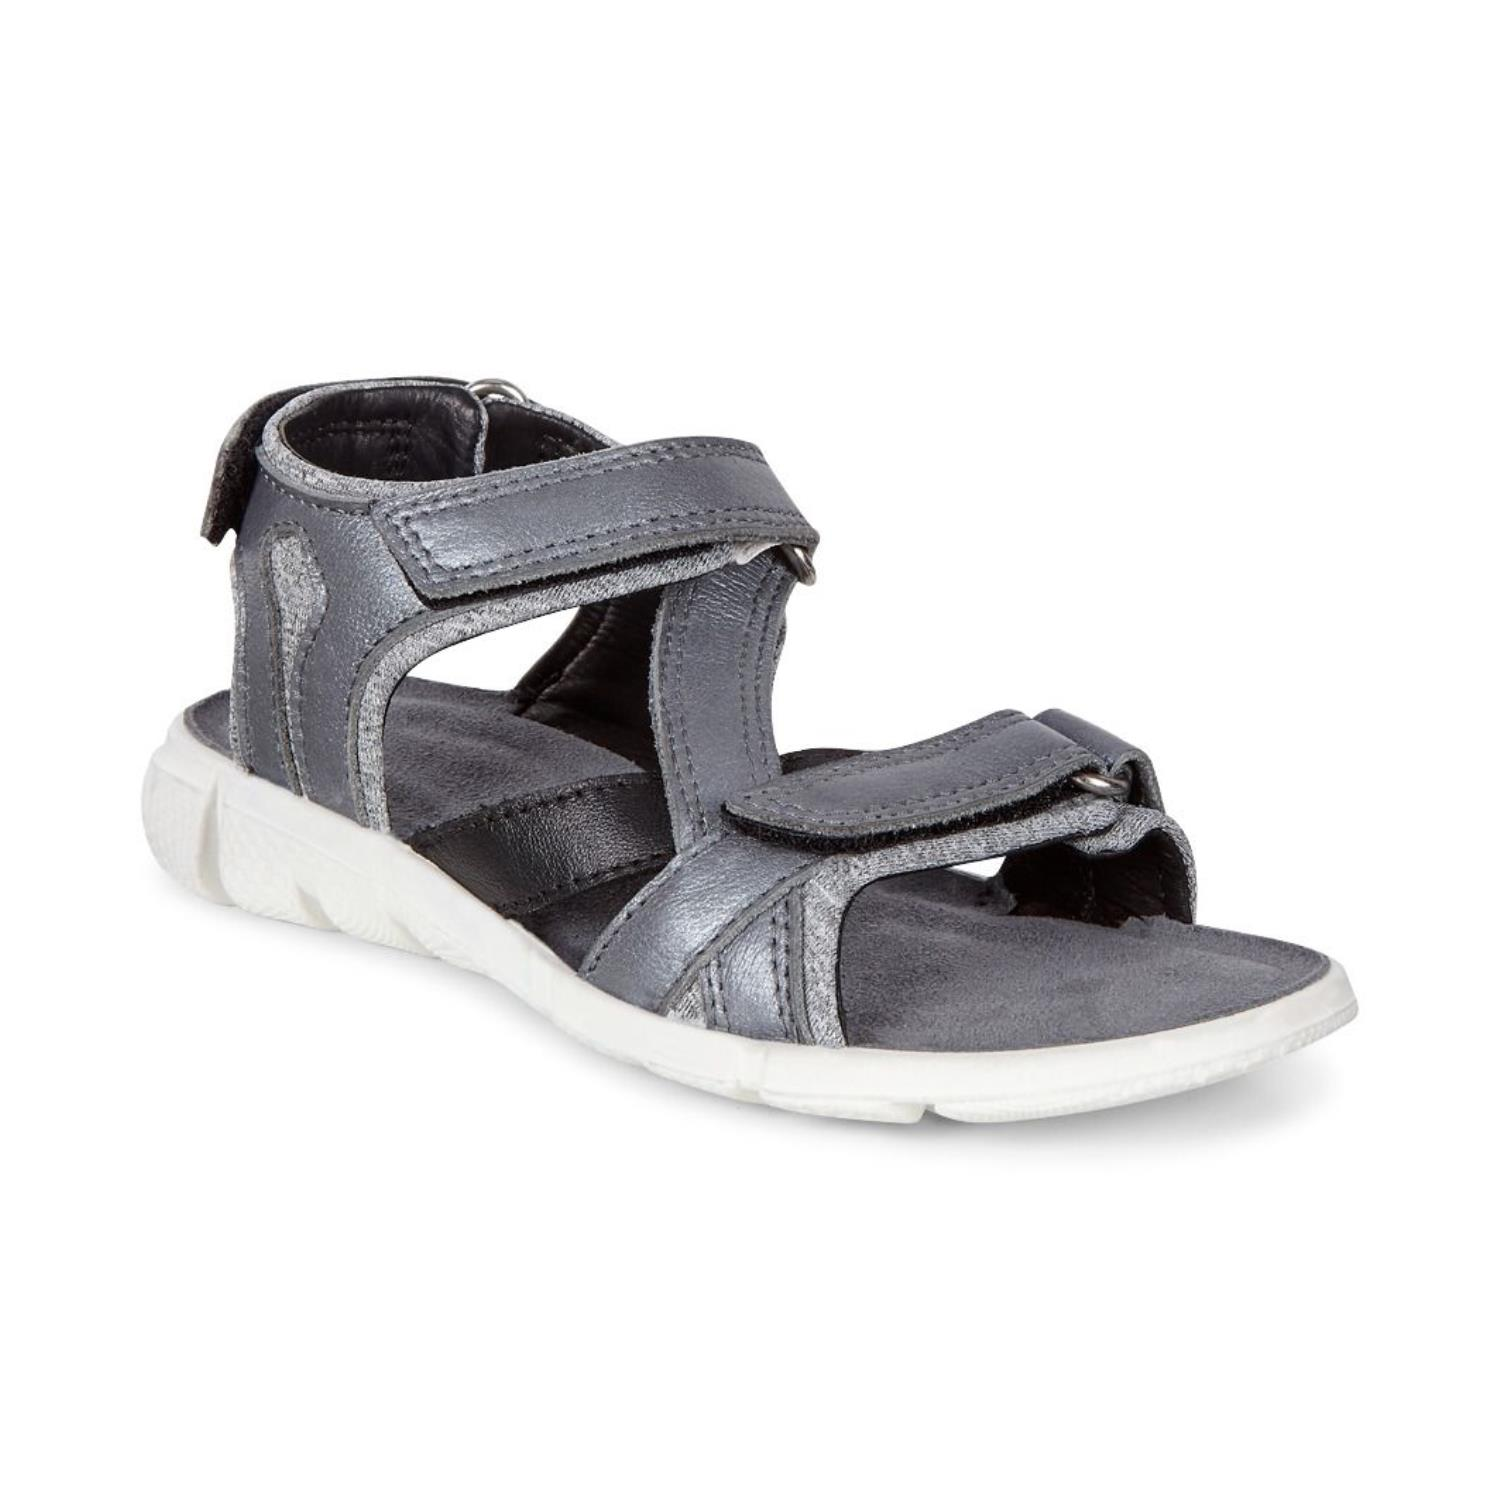 INTRINSIC SANDAL (705543) Holst Sko